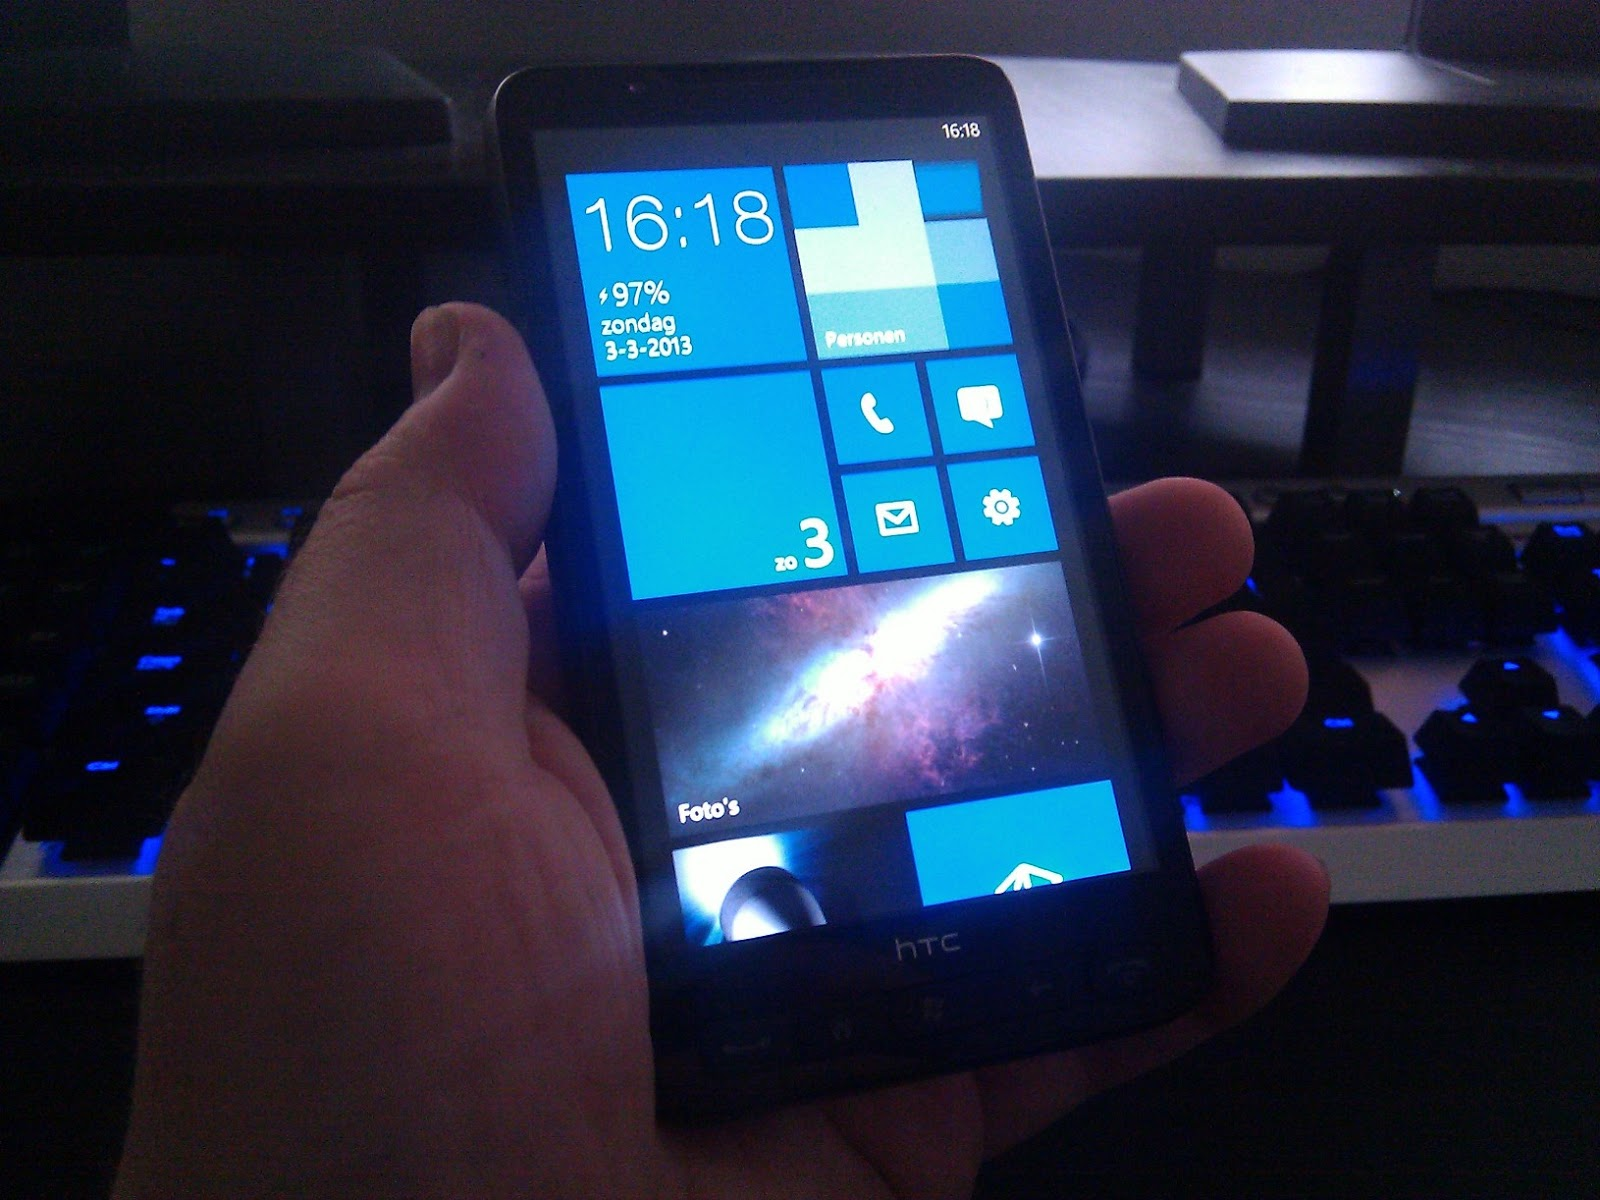 activesync htc hd2 windows 7